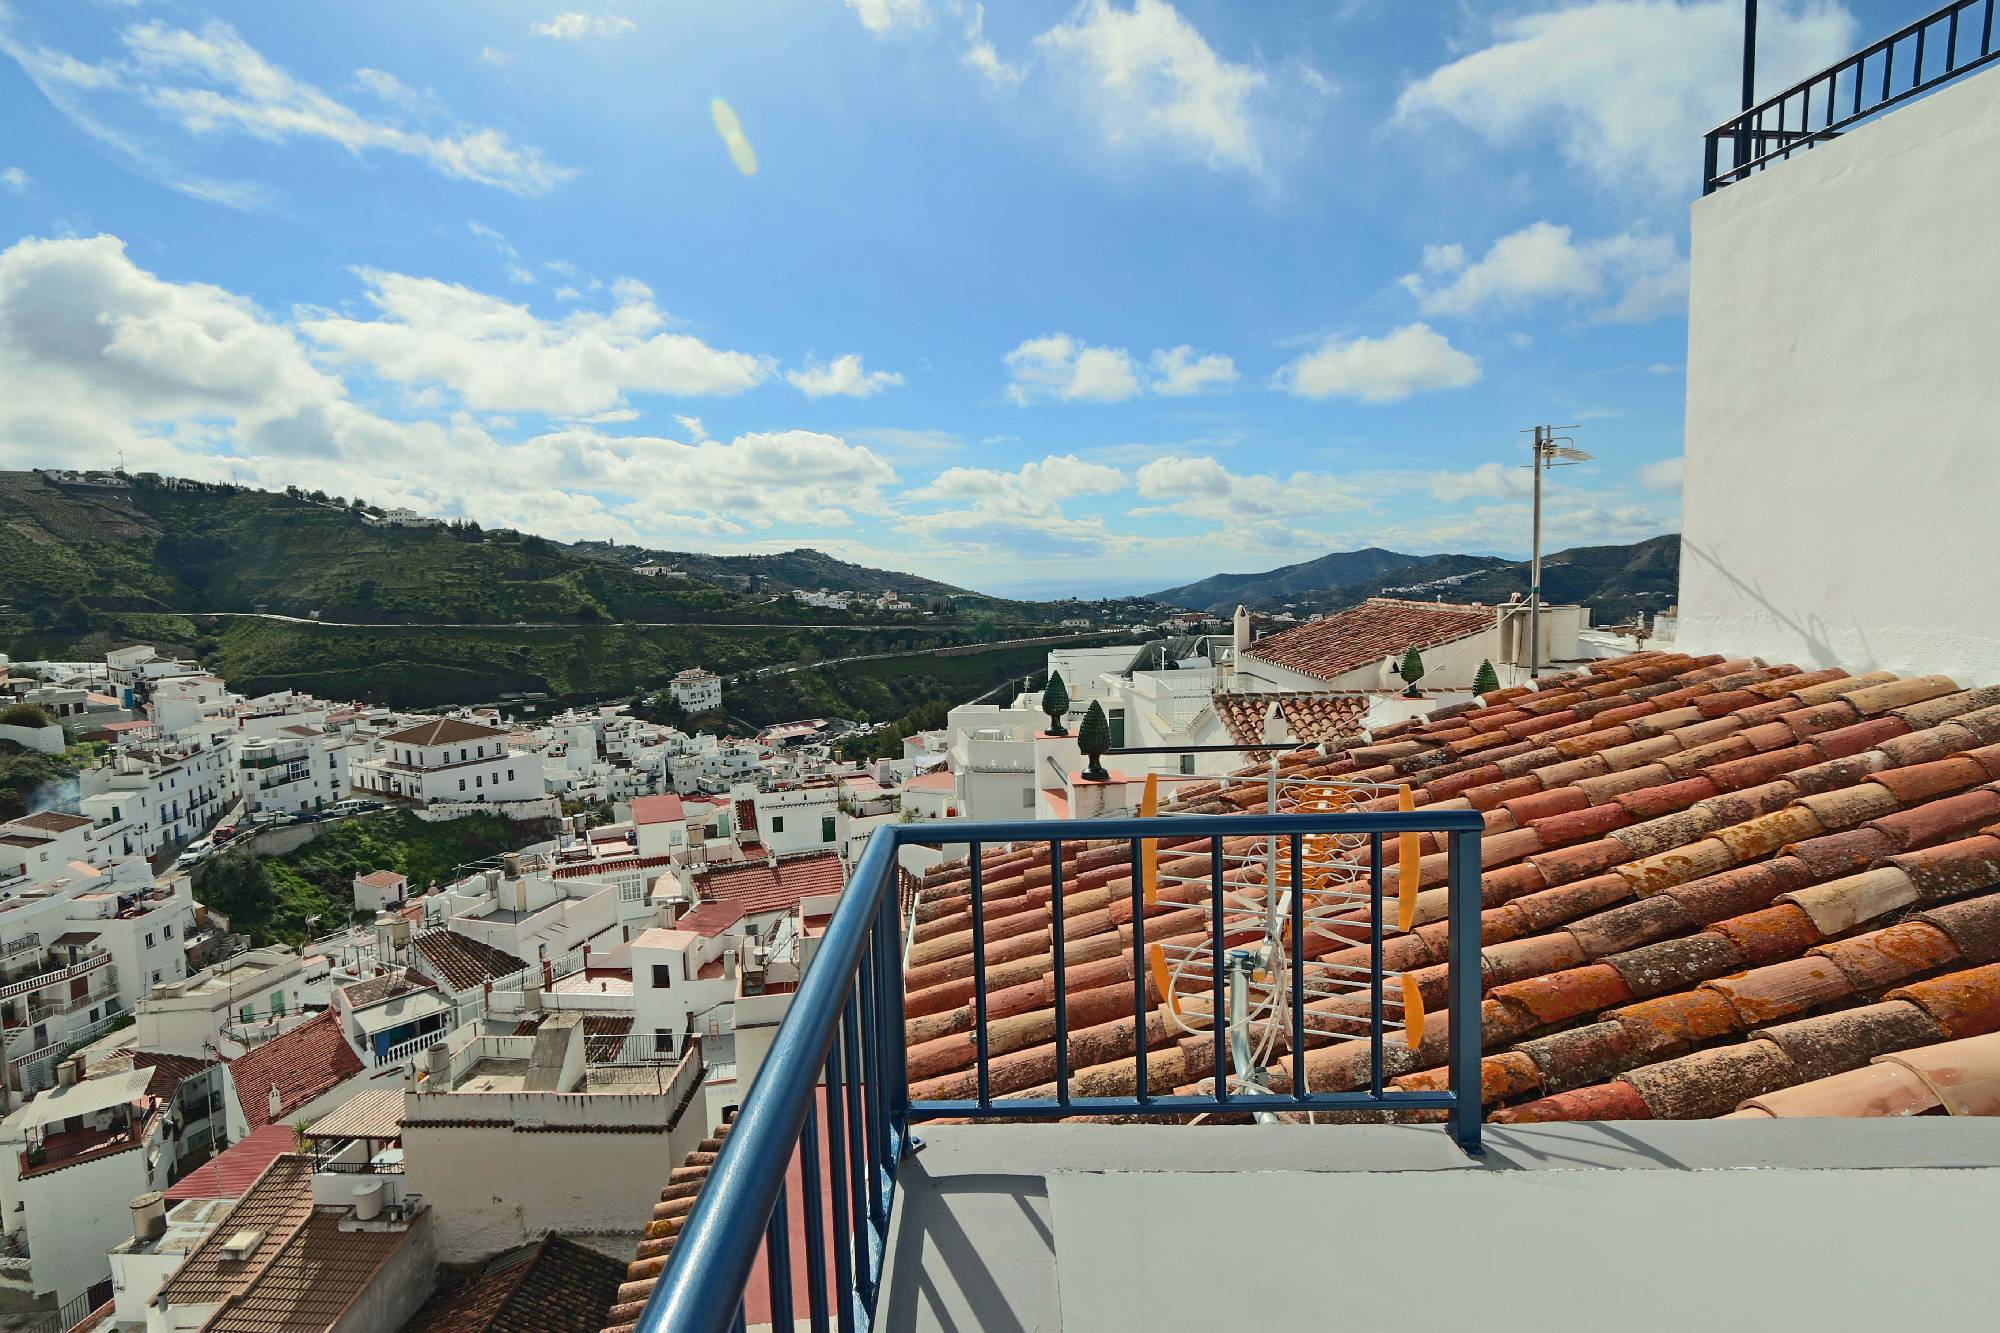 Holiday in Spain Competa, Costa del Sol village town for holiday rental